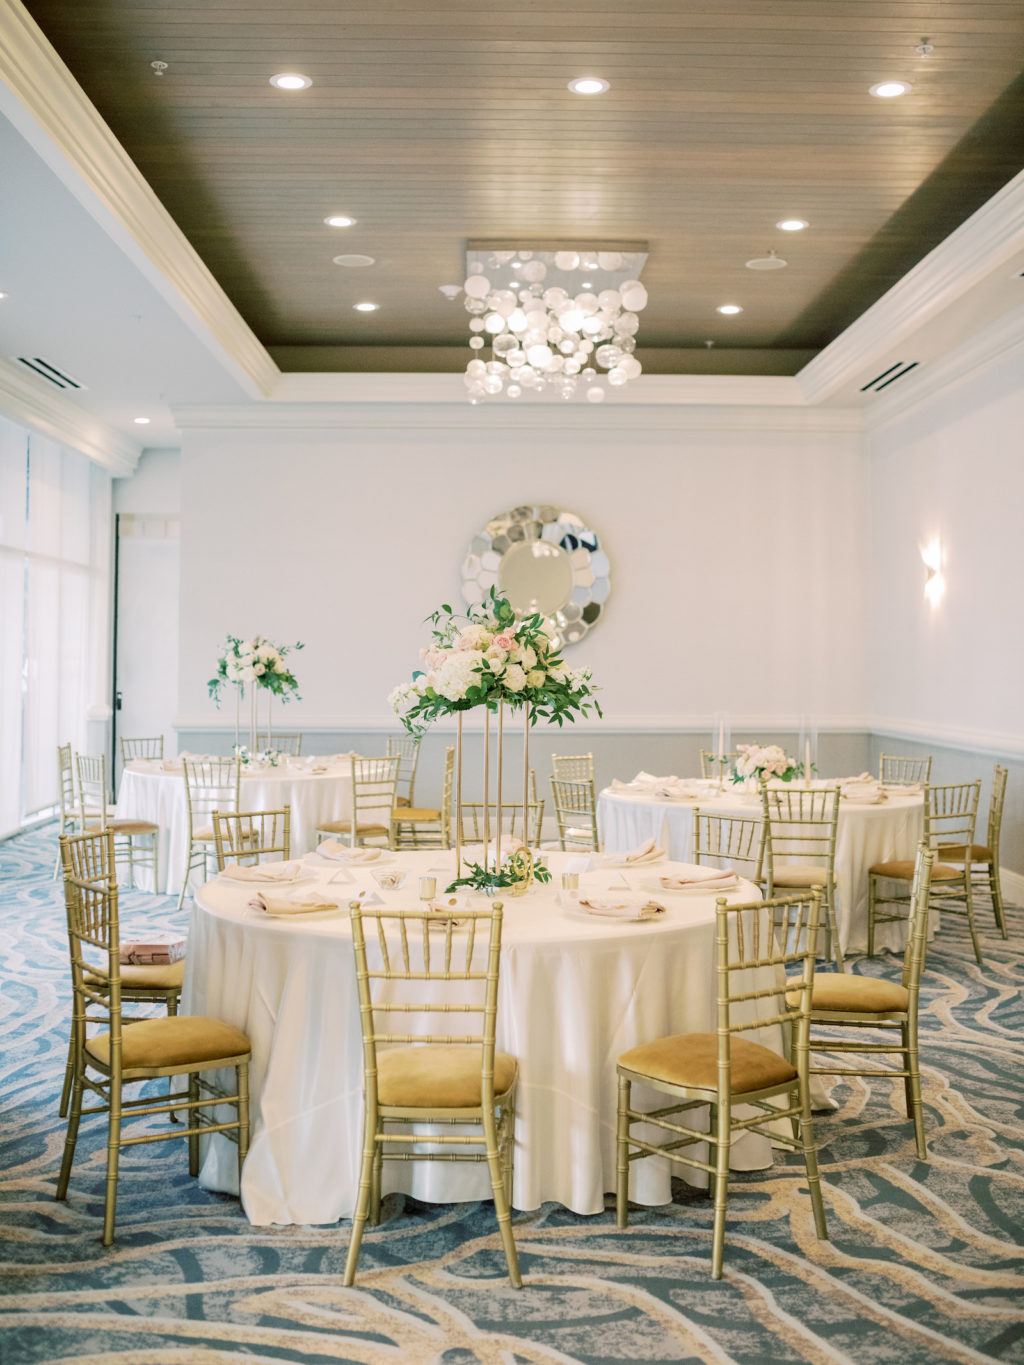 Timeless Romantic Wedding Reception Decor, Round Tables with White Linens, Gold Chiavari Chairs, Blush and Ivory with Greenery Floral Centerpieces | Wedding Venue Hyatt Regency Clearwater Beach | Tampa Bay Wedding Planner Special Moments Event Planning | Wedding Rentals Kate Ryan Event Rentals